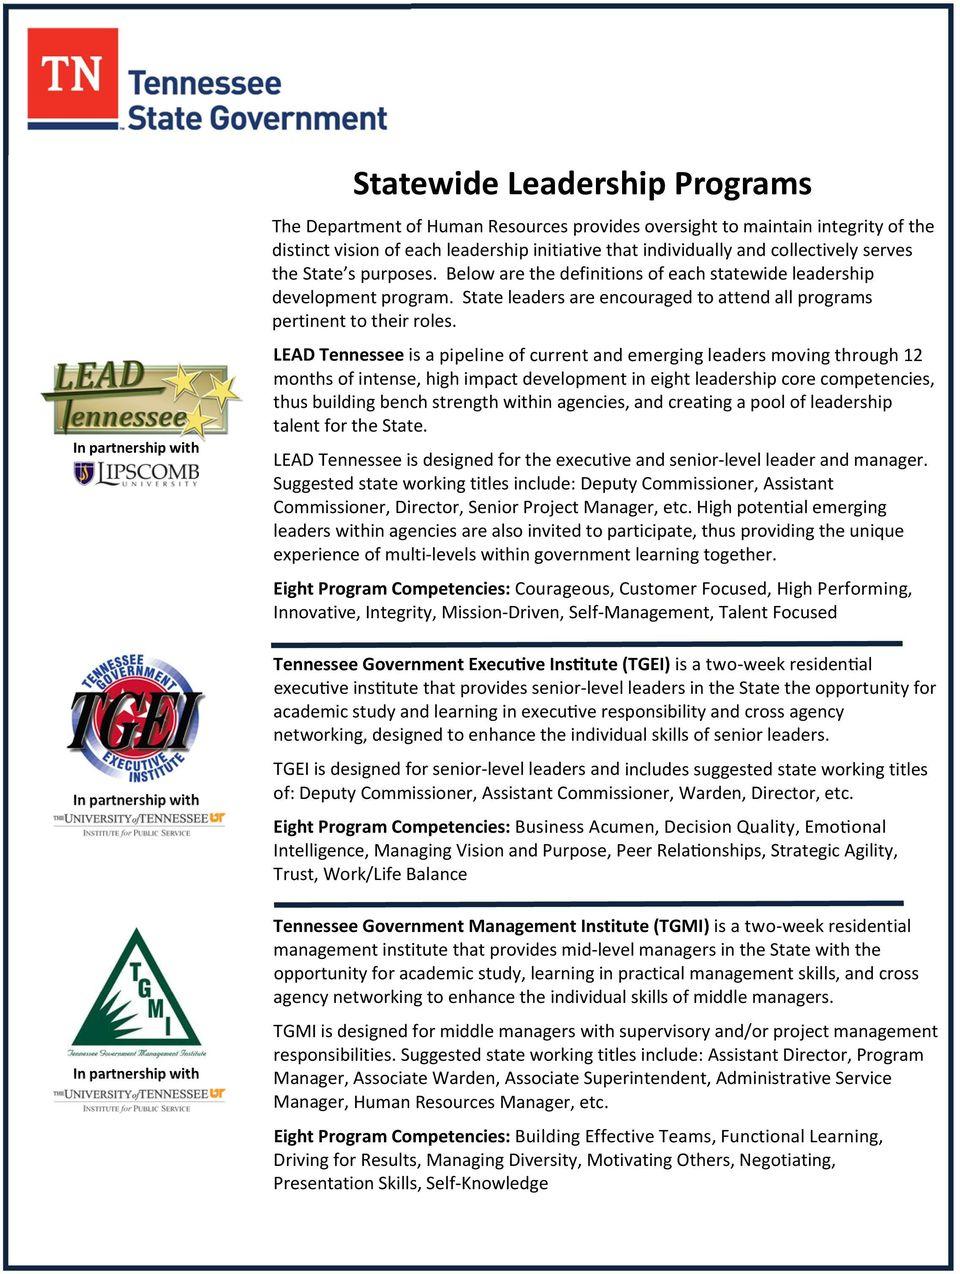 LEAD Tennessee is a pipeline of current and emerging leaders moving through 12 months of intense, high impact development in eight leadership core competencies, thus building bench strength within